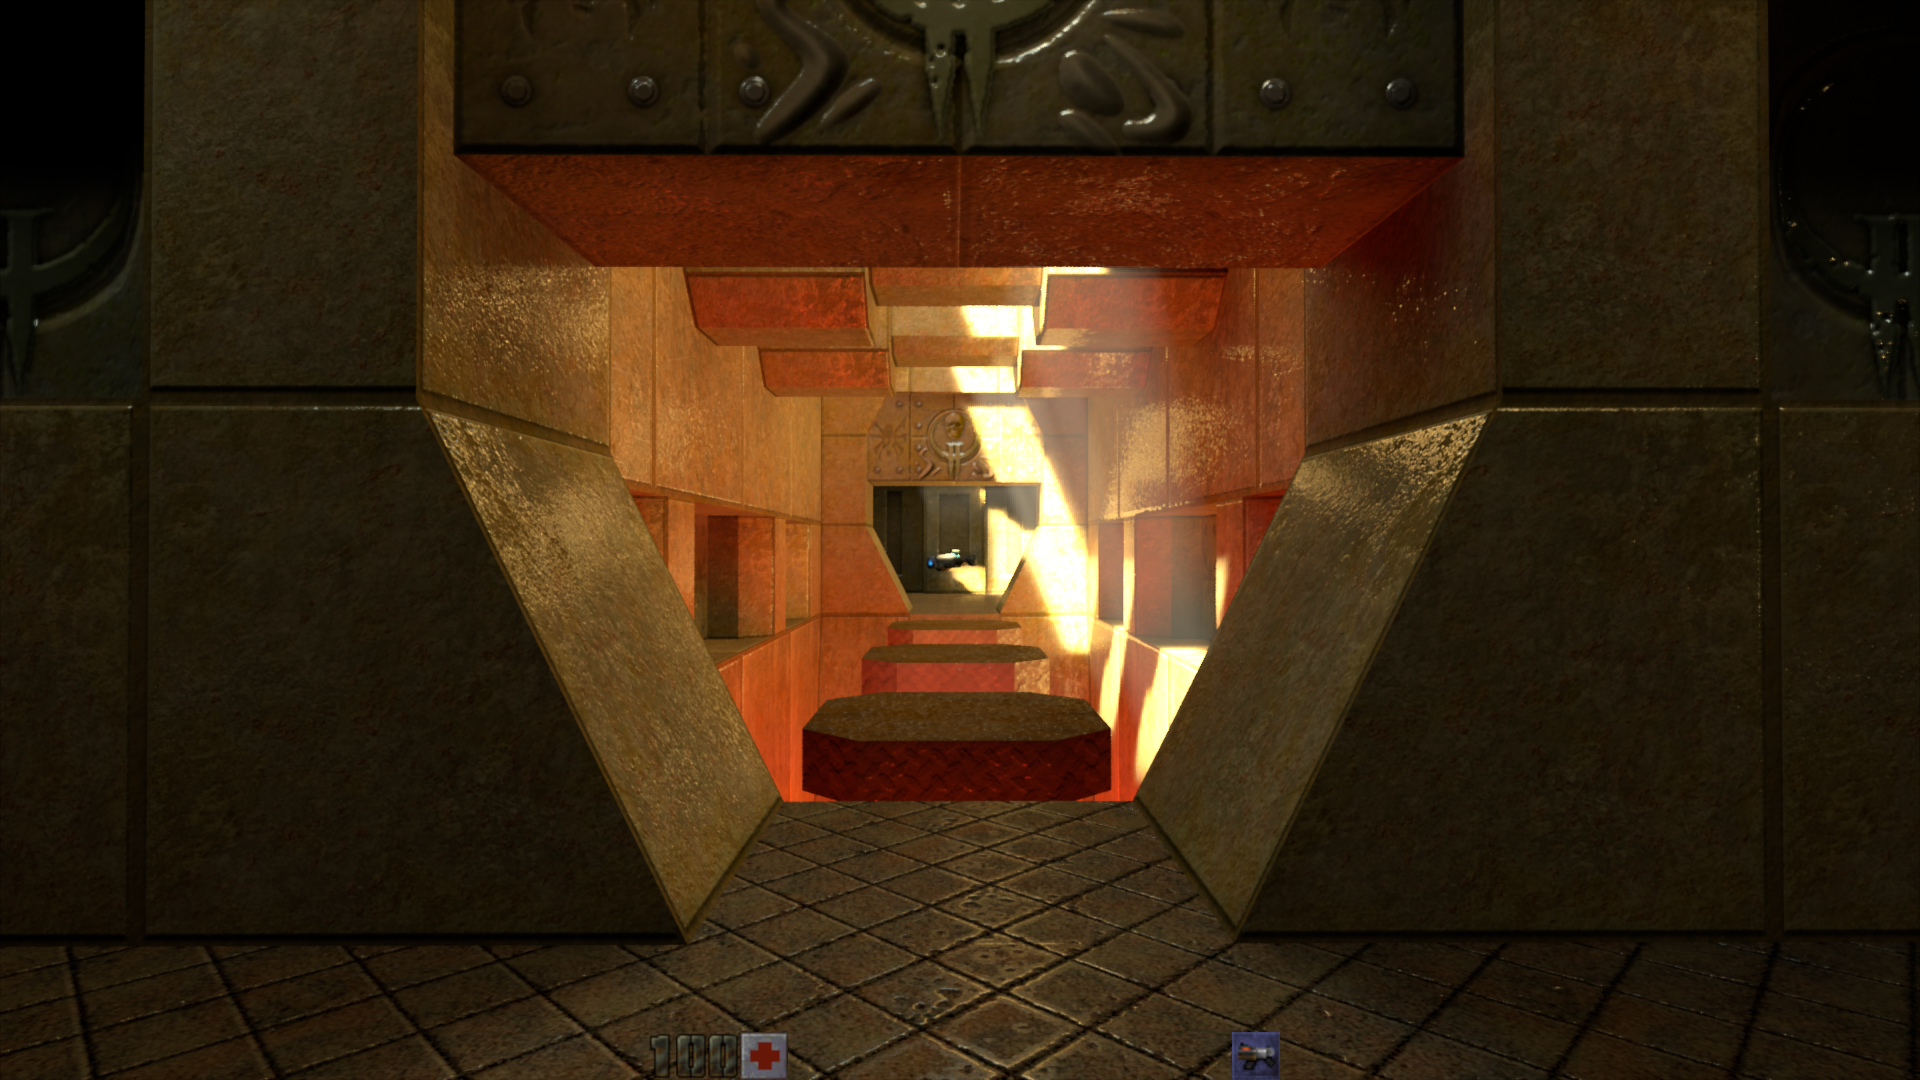 Ray-traced Quake 2 looks stunning | PC Gamer